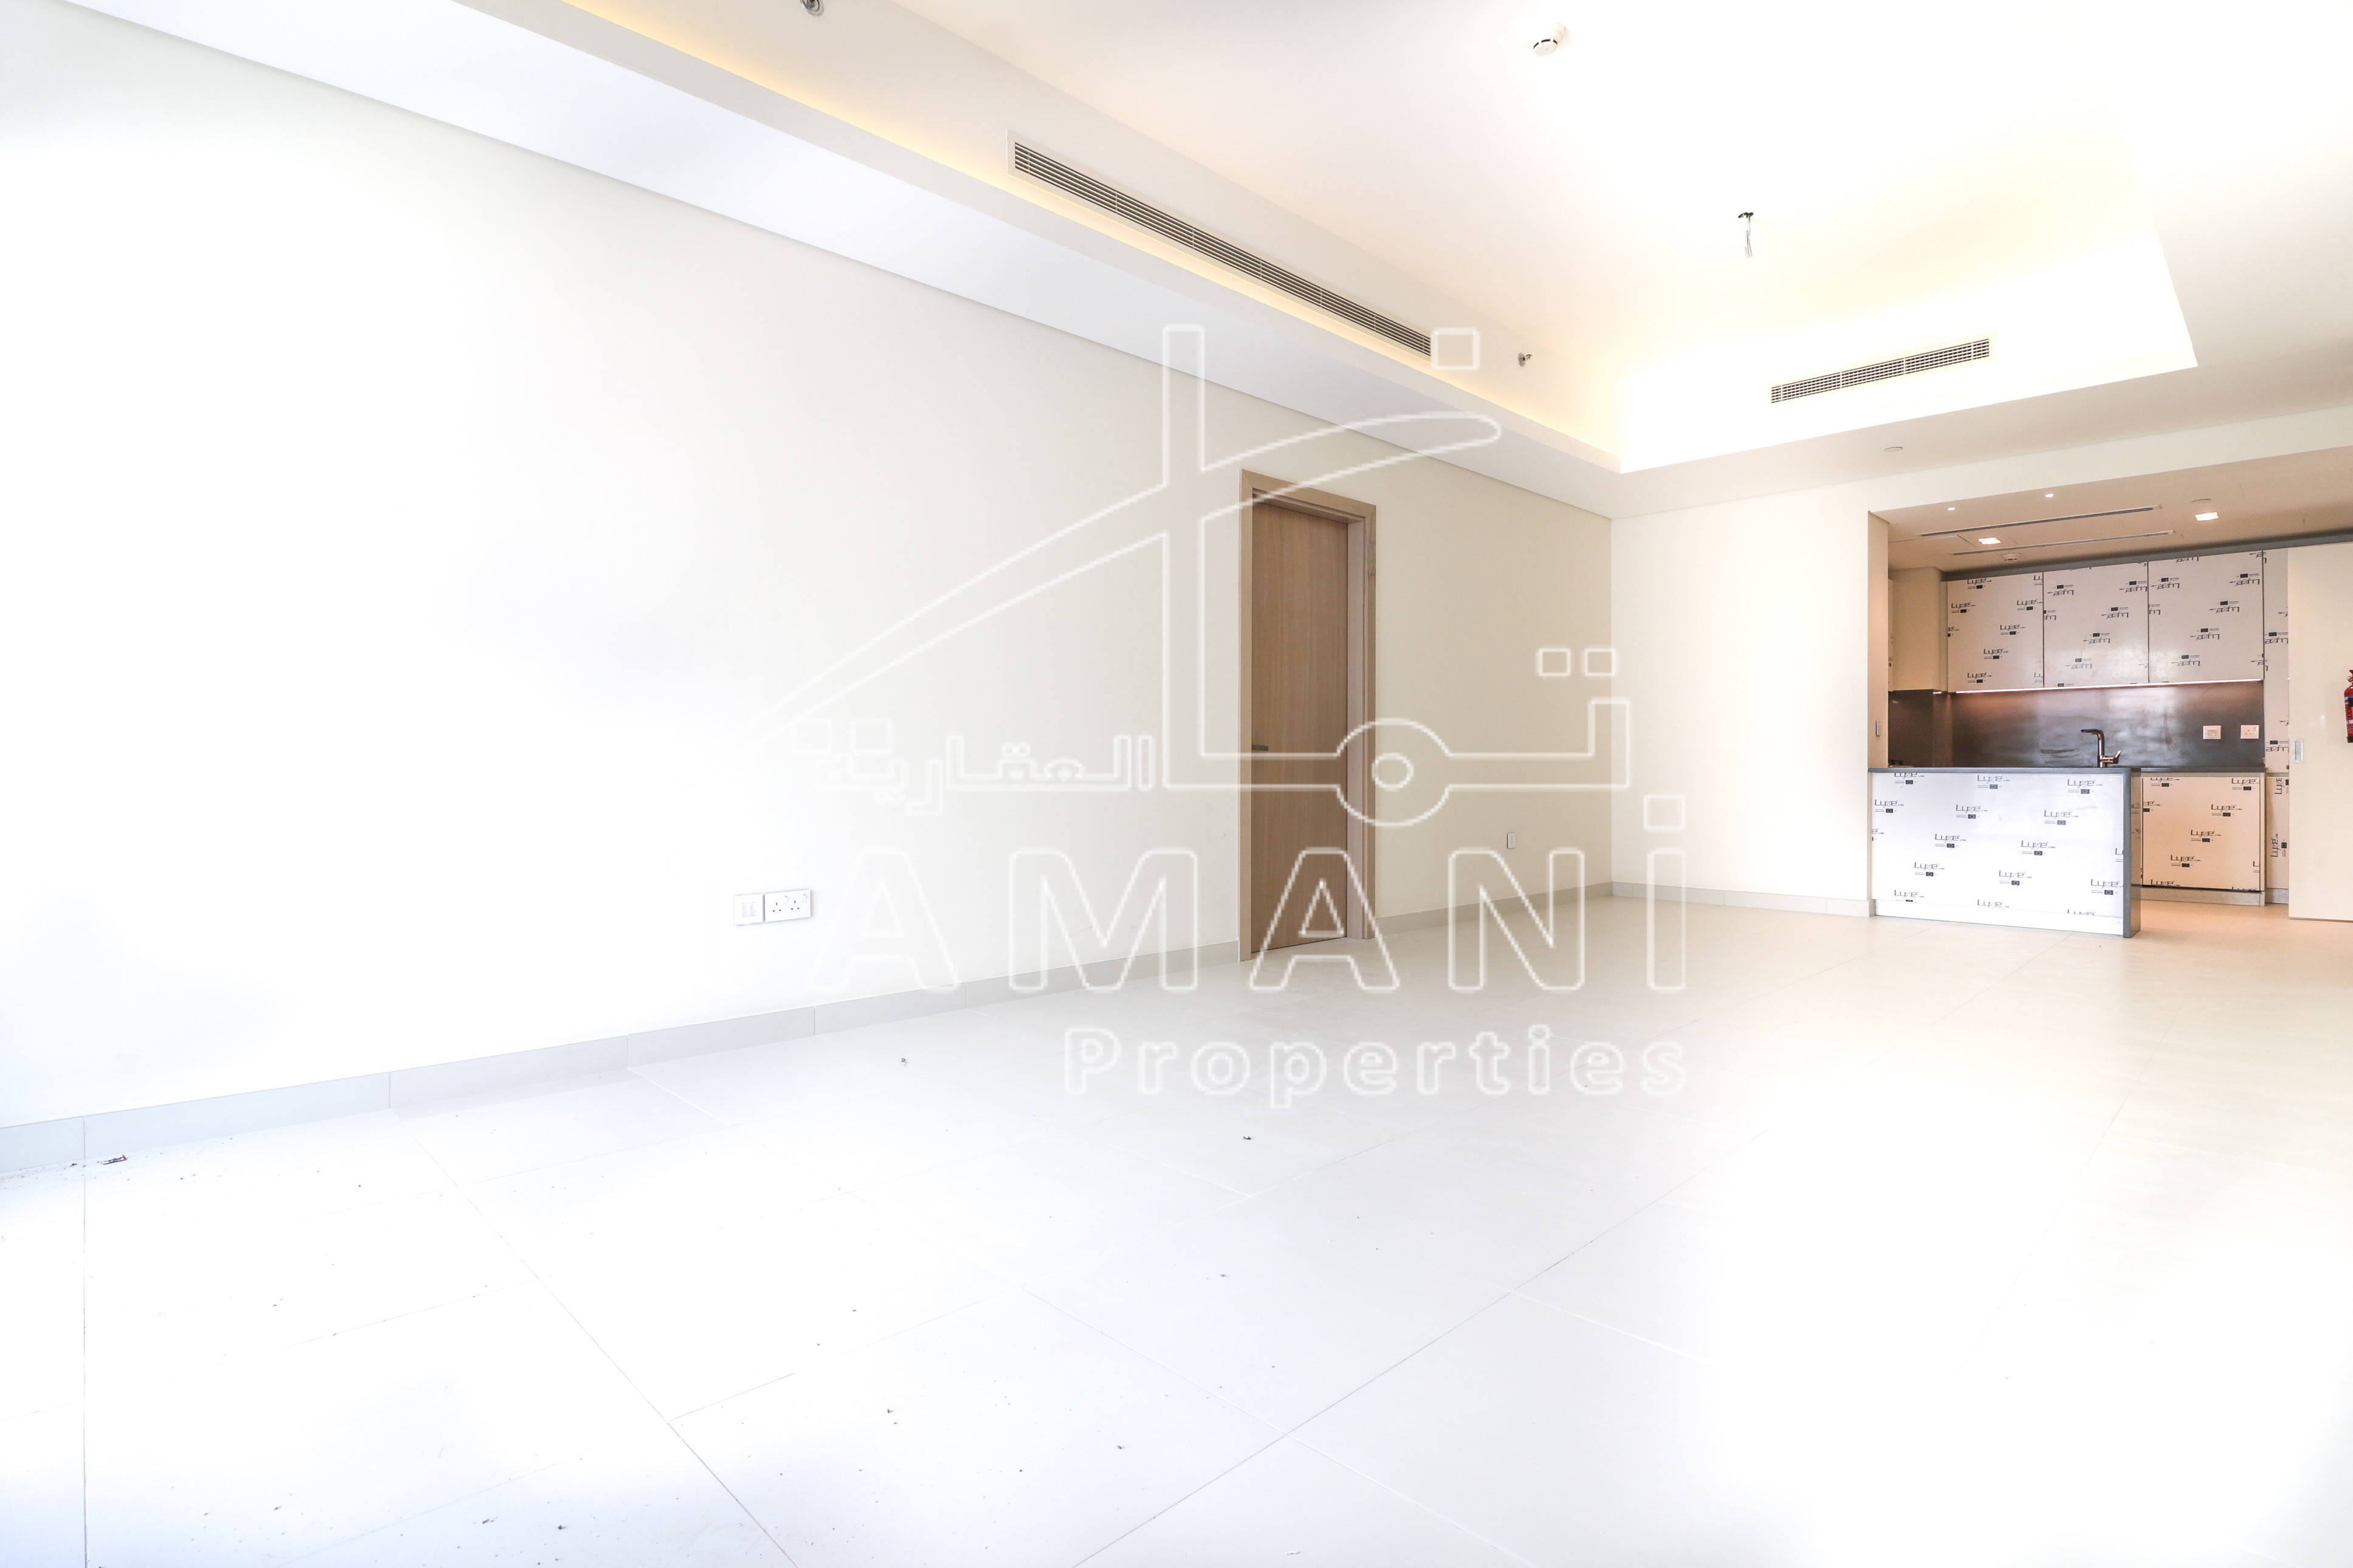 Brandnew 3BR Corner Unit with Lake View Downtown - Mada Residences by ARTAR